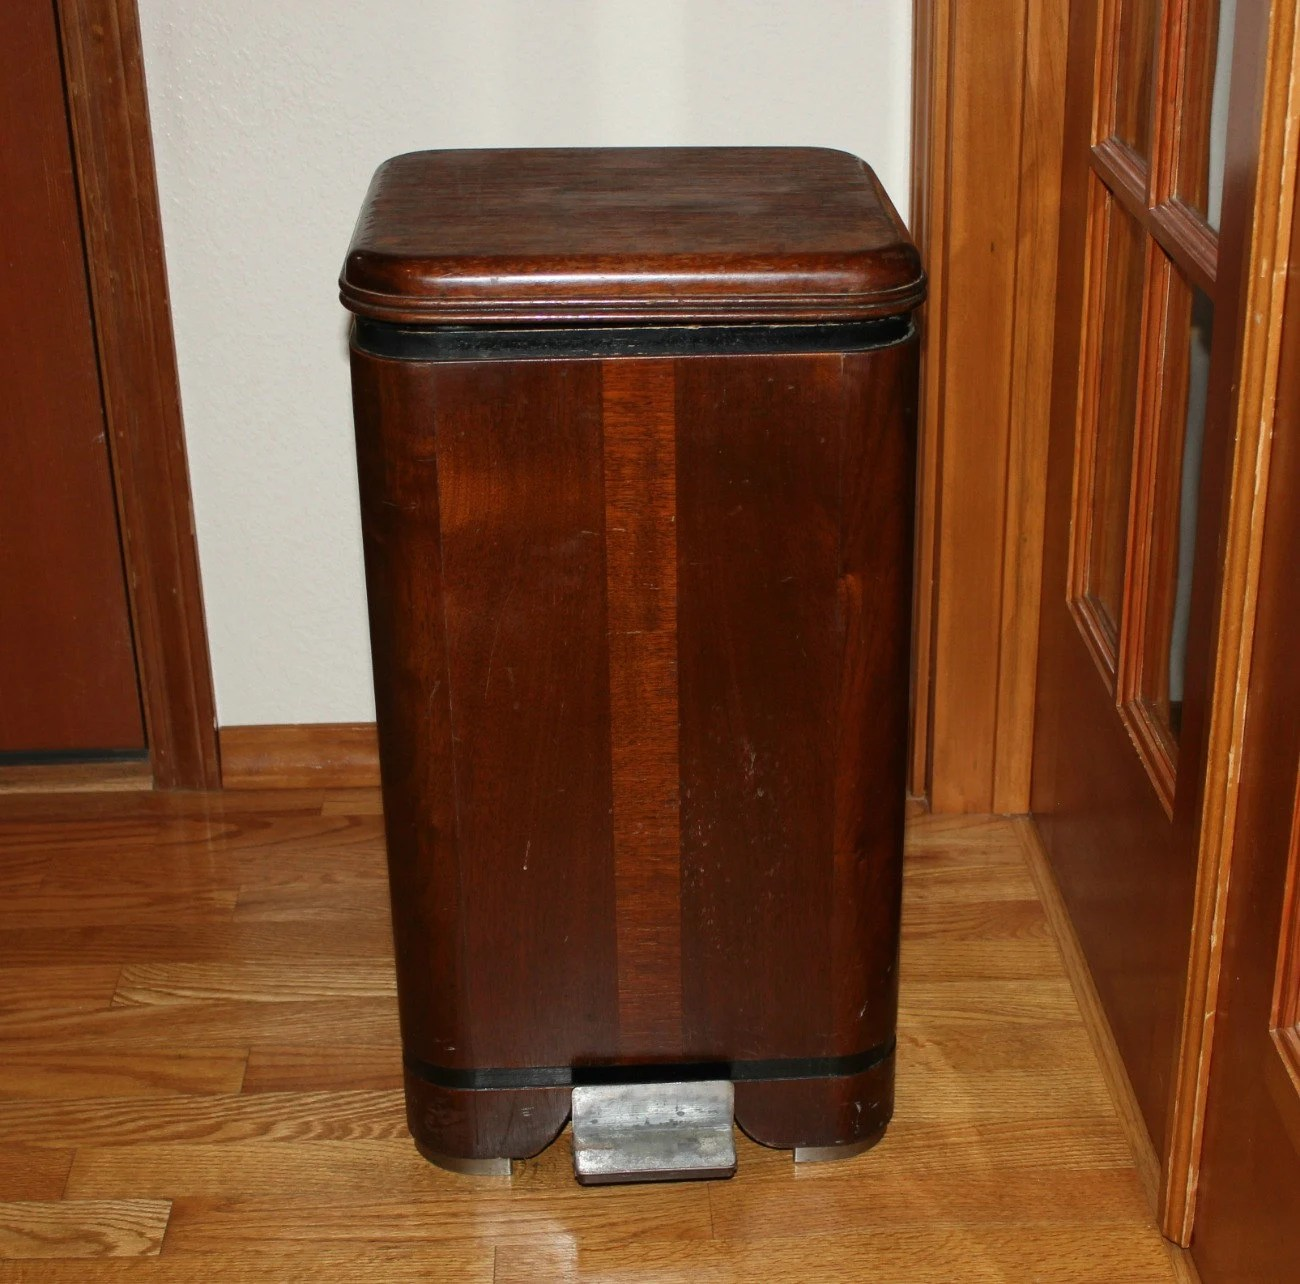 Vintage Kitchen Trash Can Waterfall Hamilton Trash Can Garbage Bin Vintage Wood Step Lid